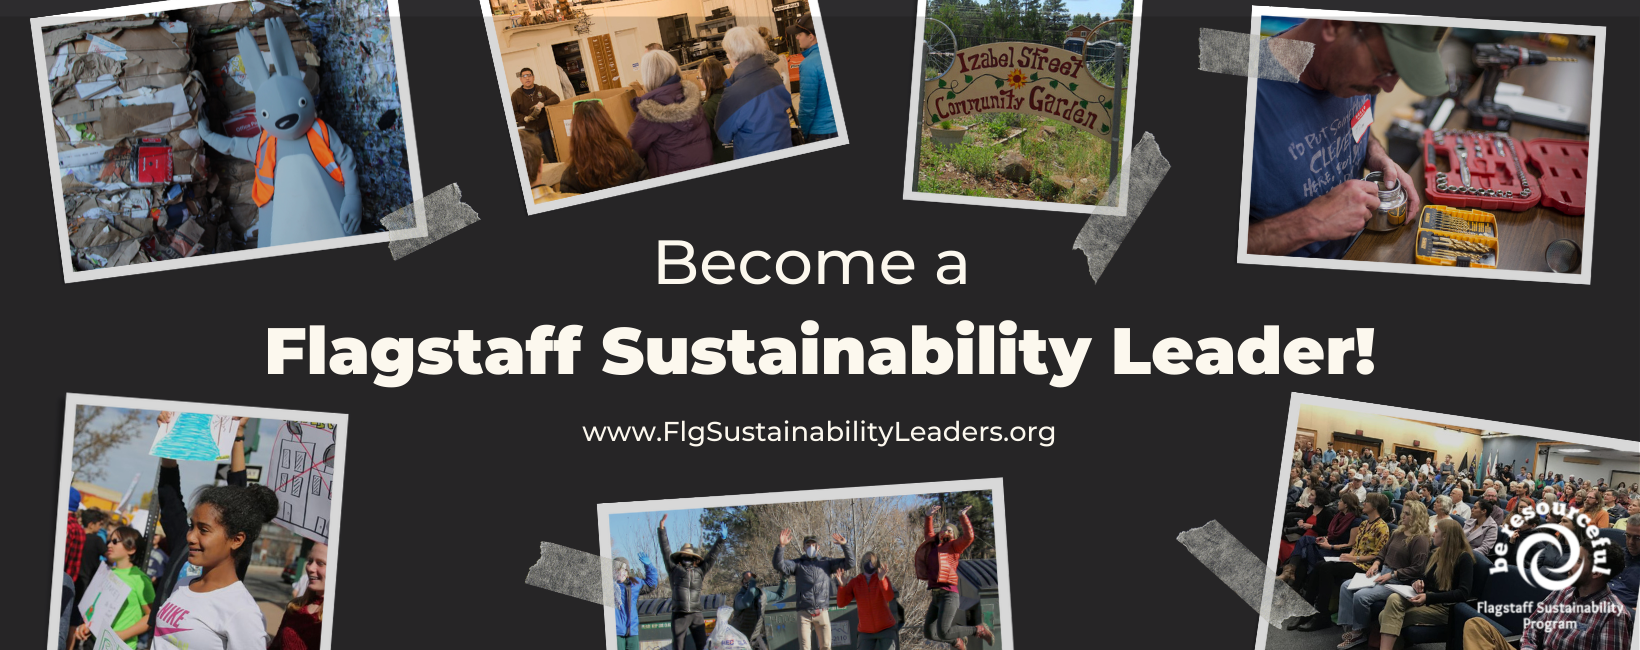 Want to lead sustainable action in the Flagstaff community? Get ready to learn, meet, share, and act during the 8-week Flagstaff Sustainability Leaders course!